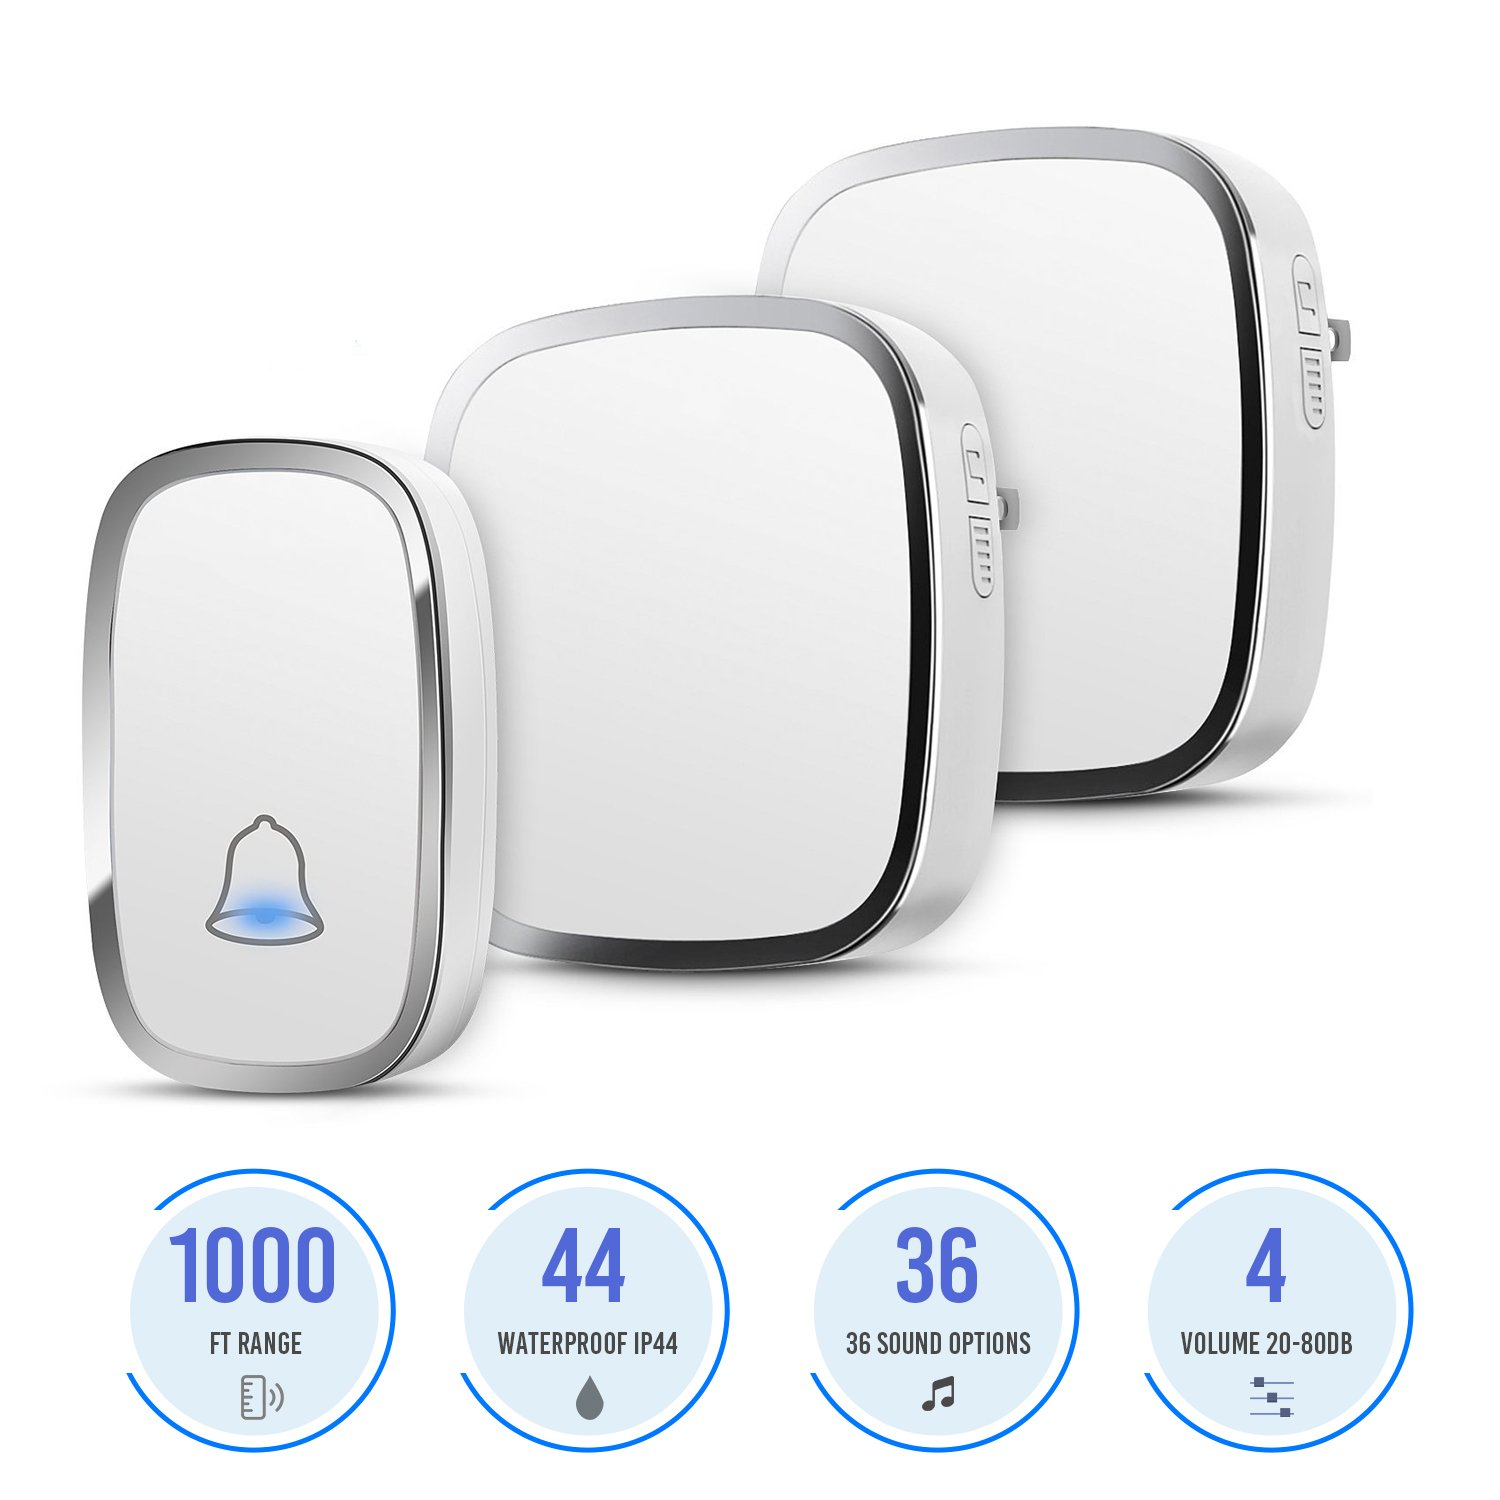 Yimaler Wireless Doorbell Waterproof Electric Chime Kit for home 1000ft Wide Range with 1 Remote Push Button Transmitter (Battery included) 2 Plug-in AC Receivers 36 Melodies 4 Level Adjustable Volume